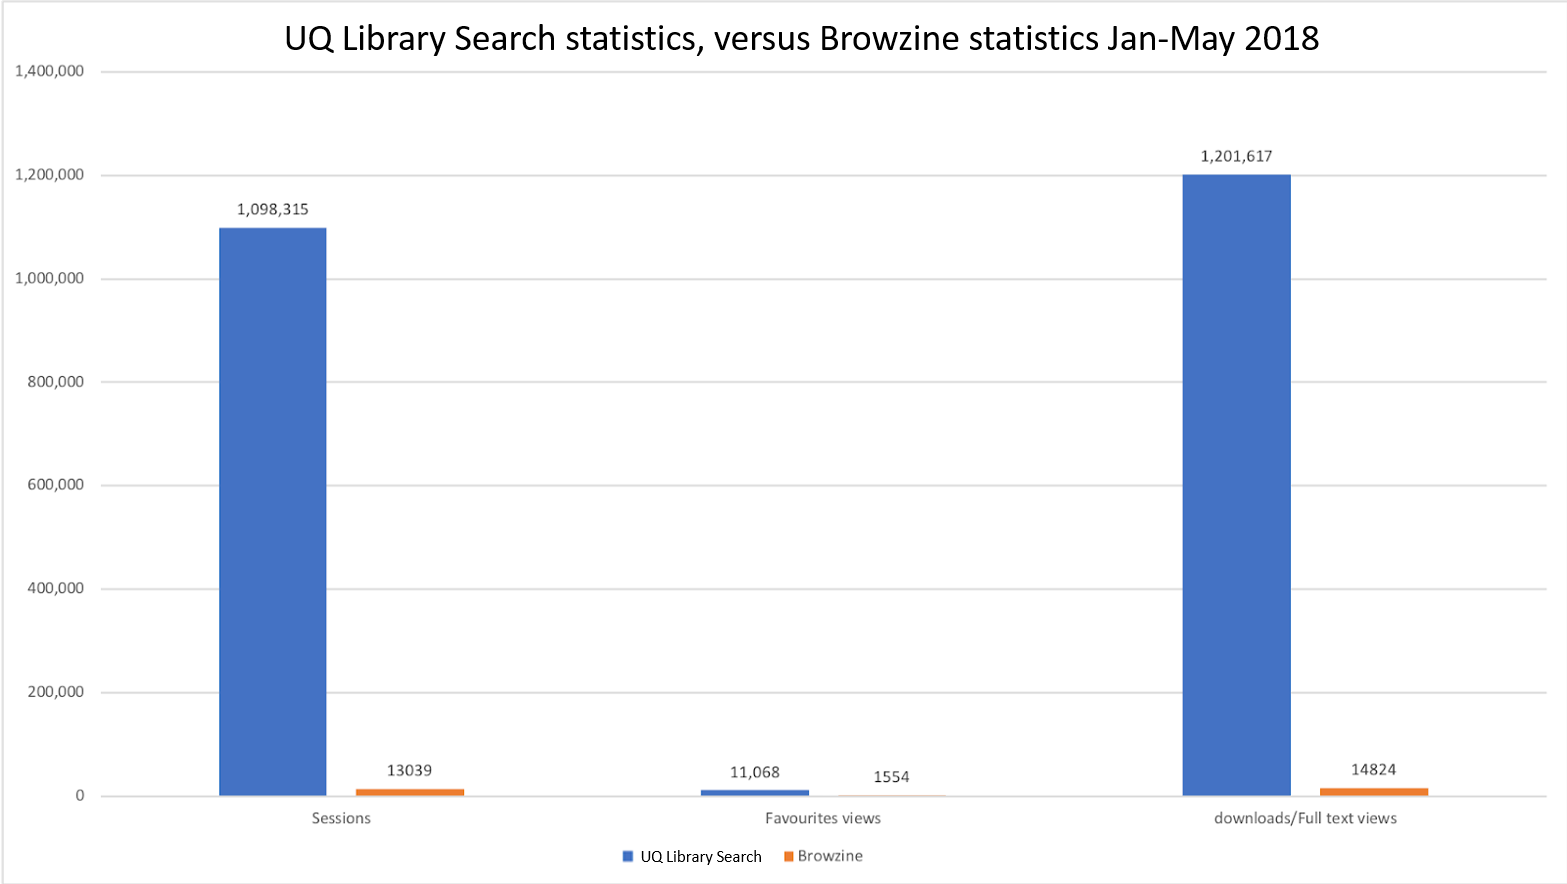 Graph comparison usage of UQ Library Search and Browzine, January-May 2018. Description below.